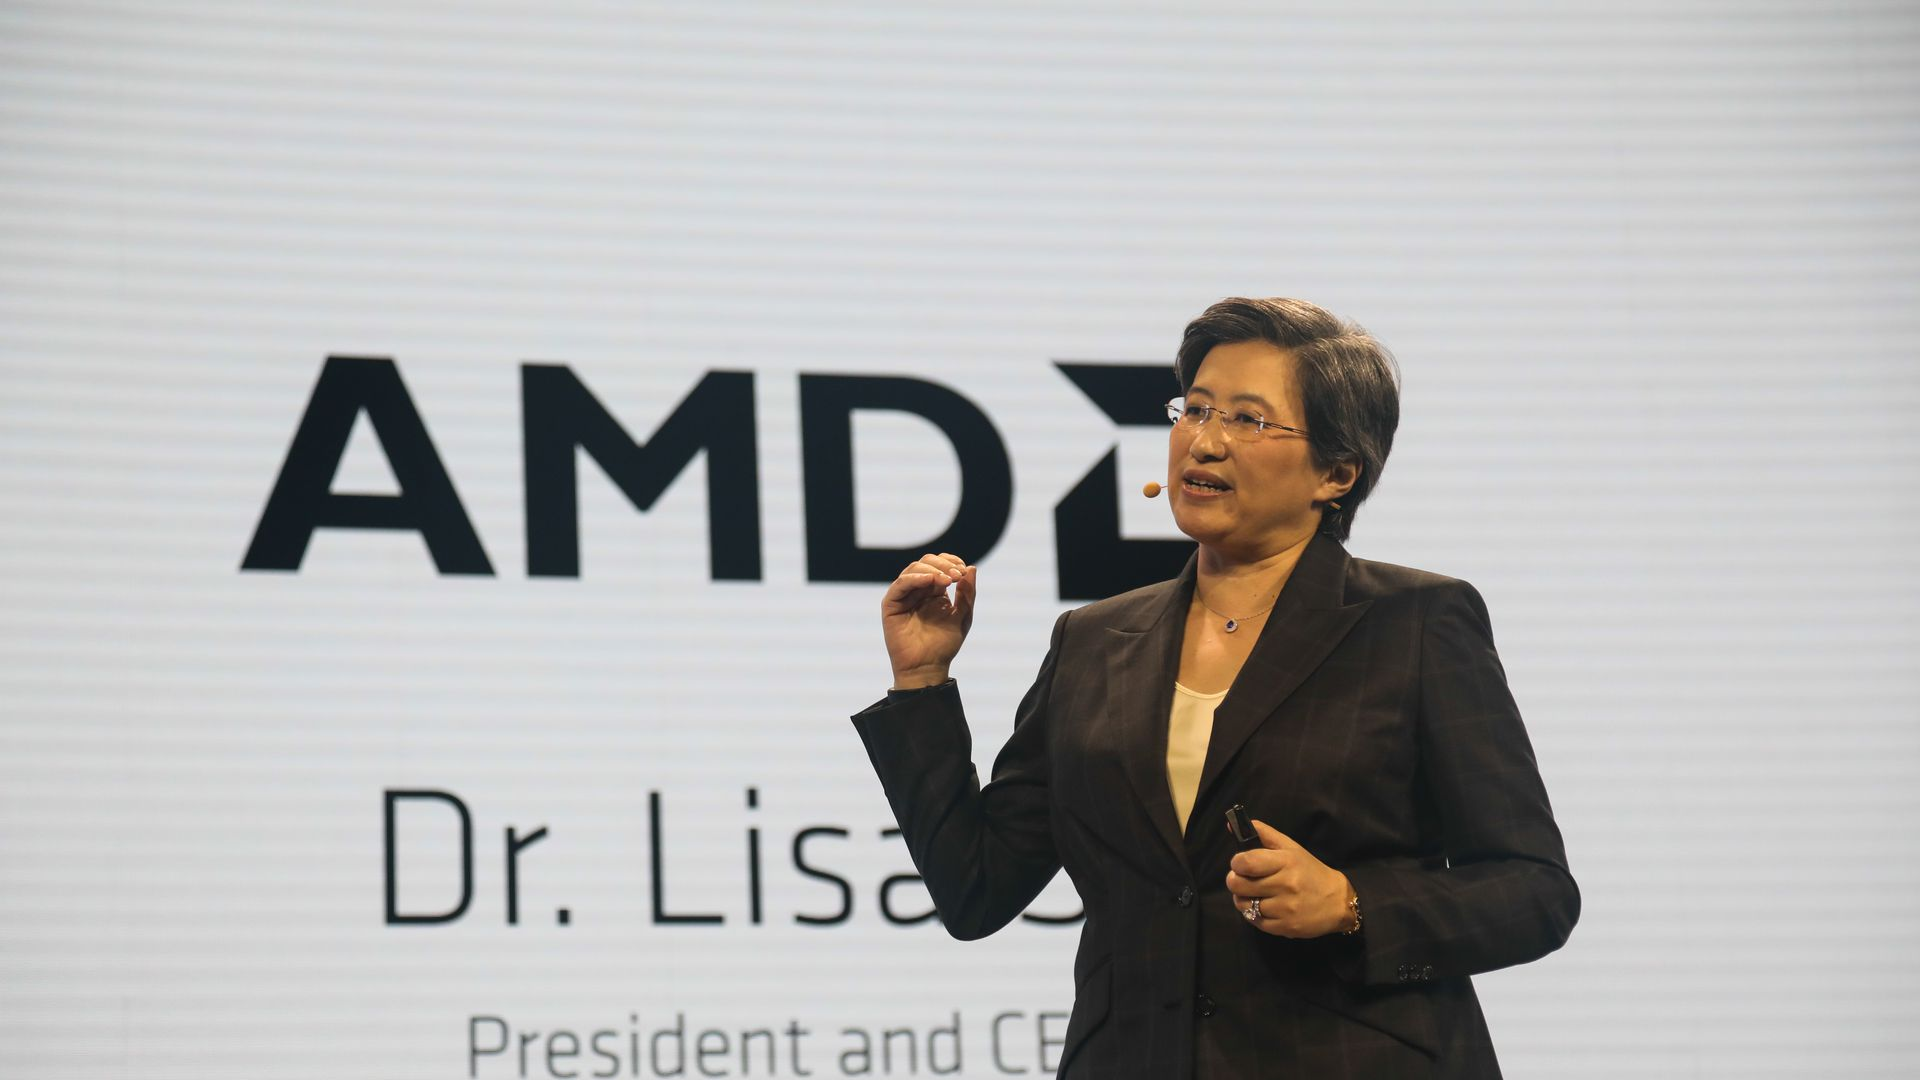 AMD CEO Lisa Su, speaking at the 2nd generation EPYC launch in San Francisco.